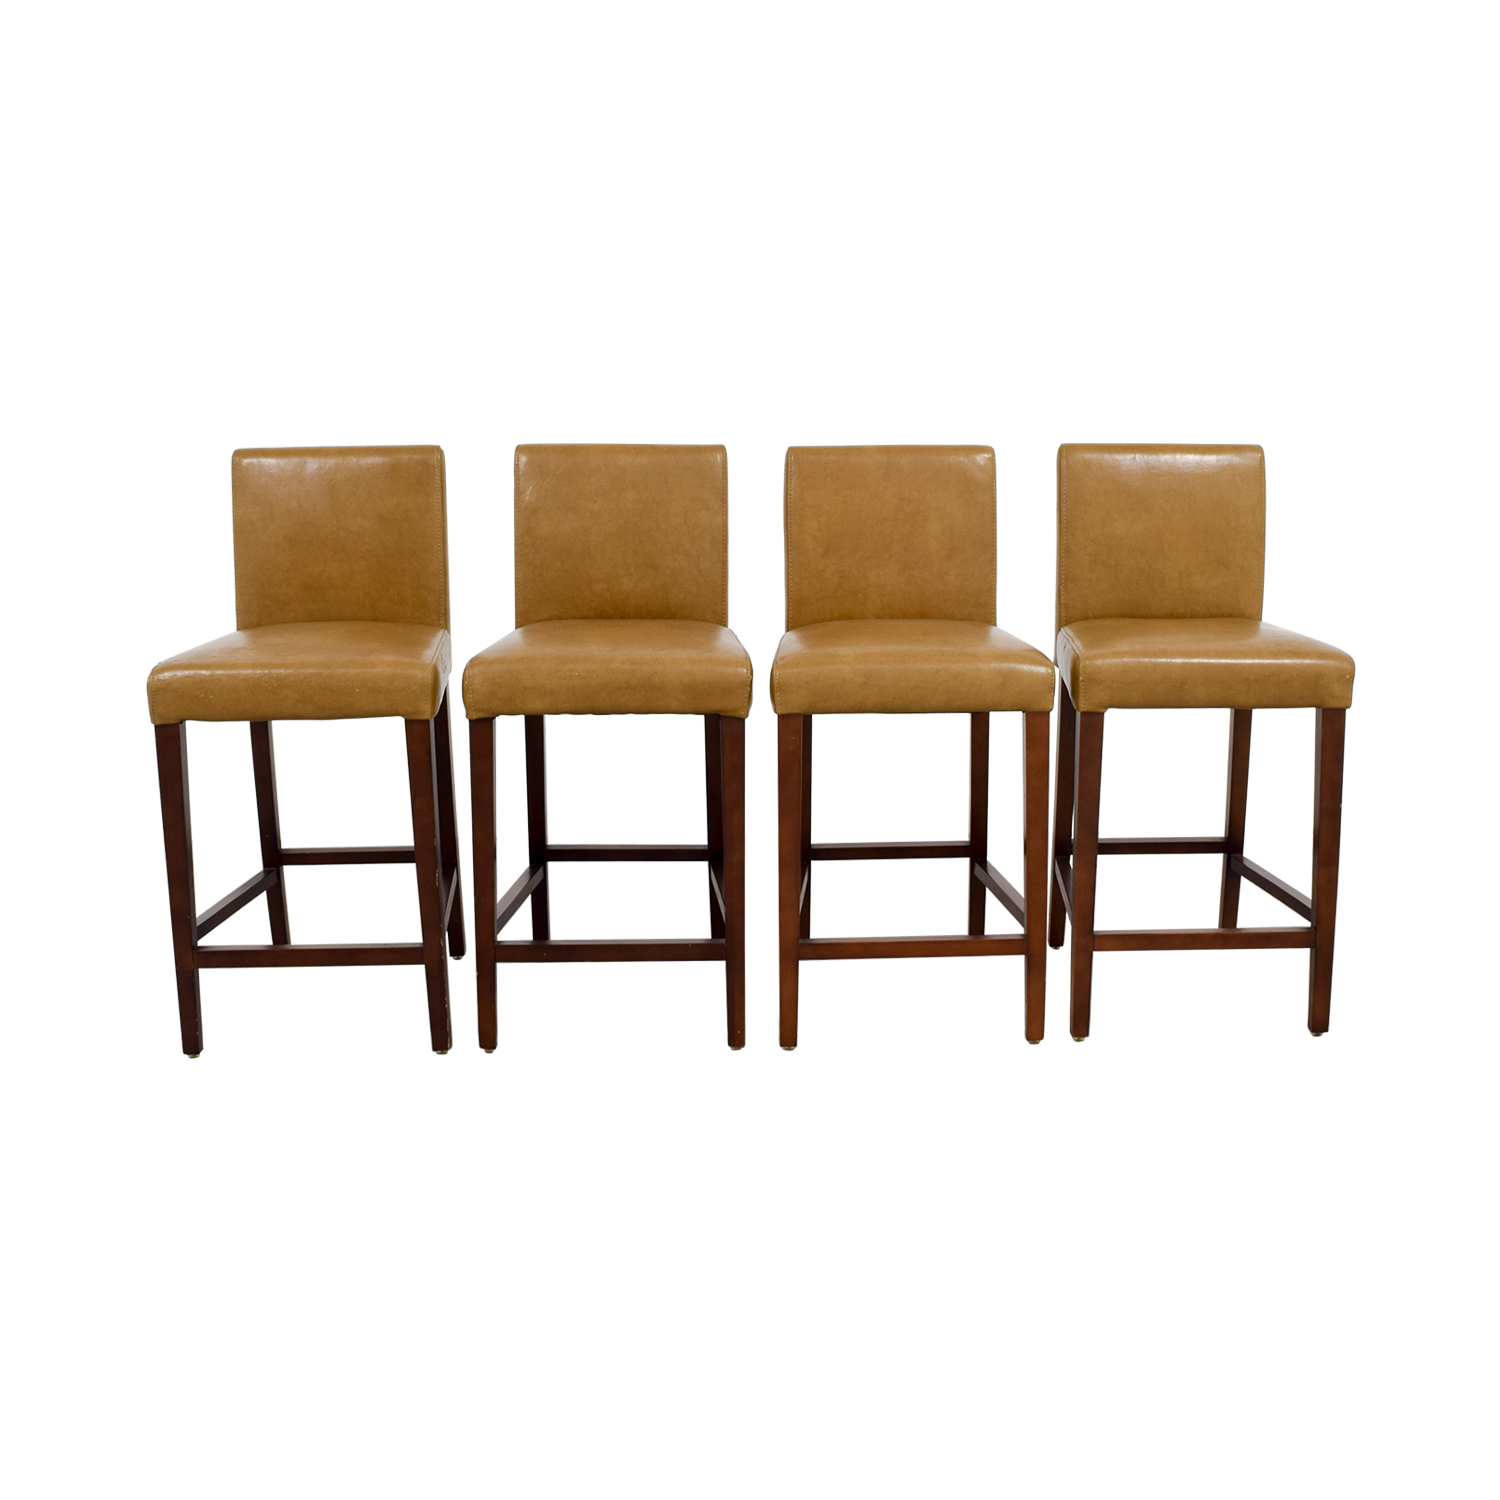 West Elm West Elm Faux Leather Stools second hand